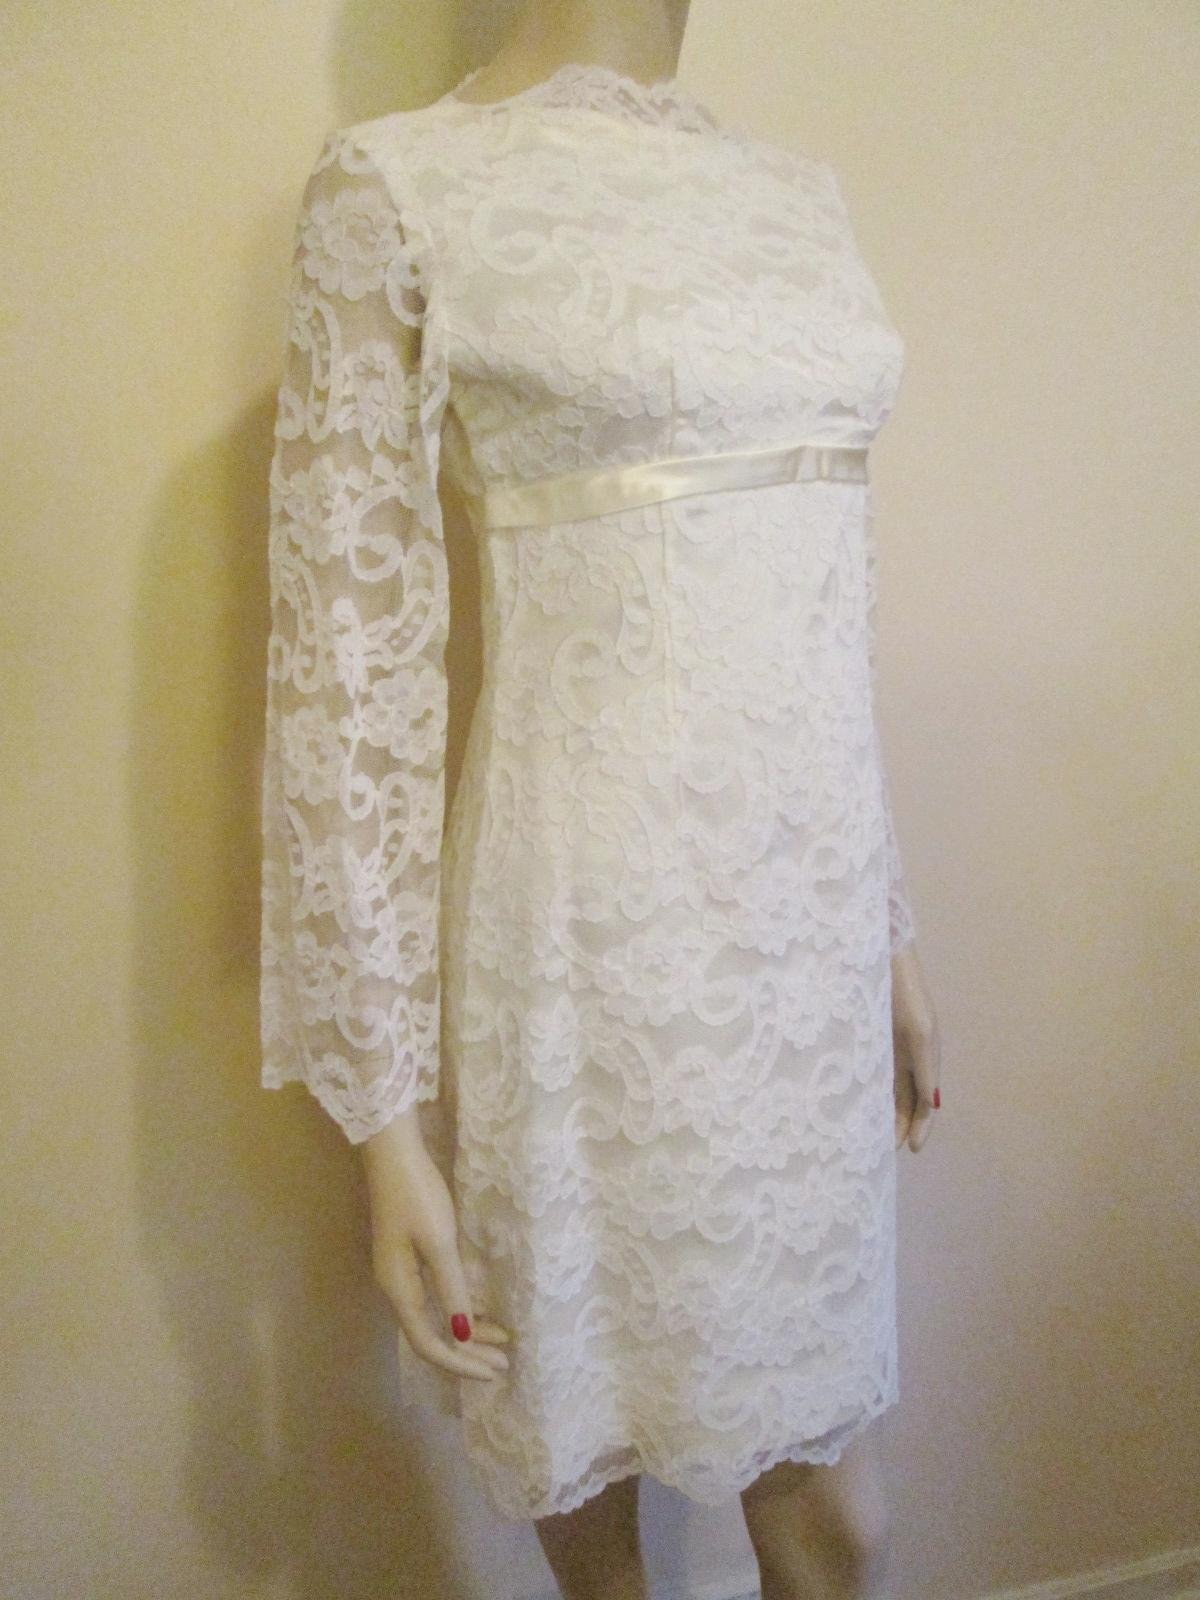 mod white lace dress vintage 1960s wedding party womens fashion from vanityflairvintage on ruby lane